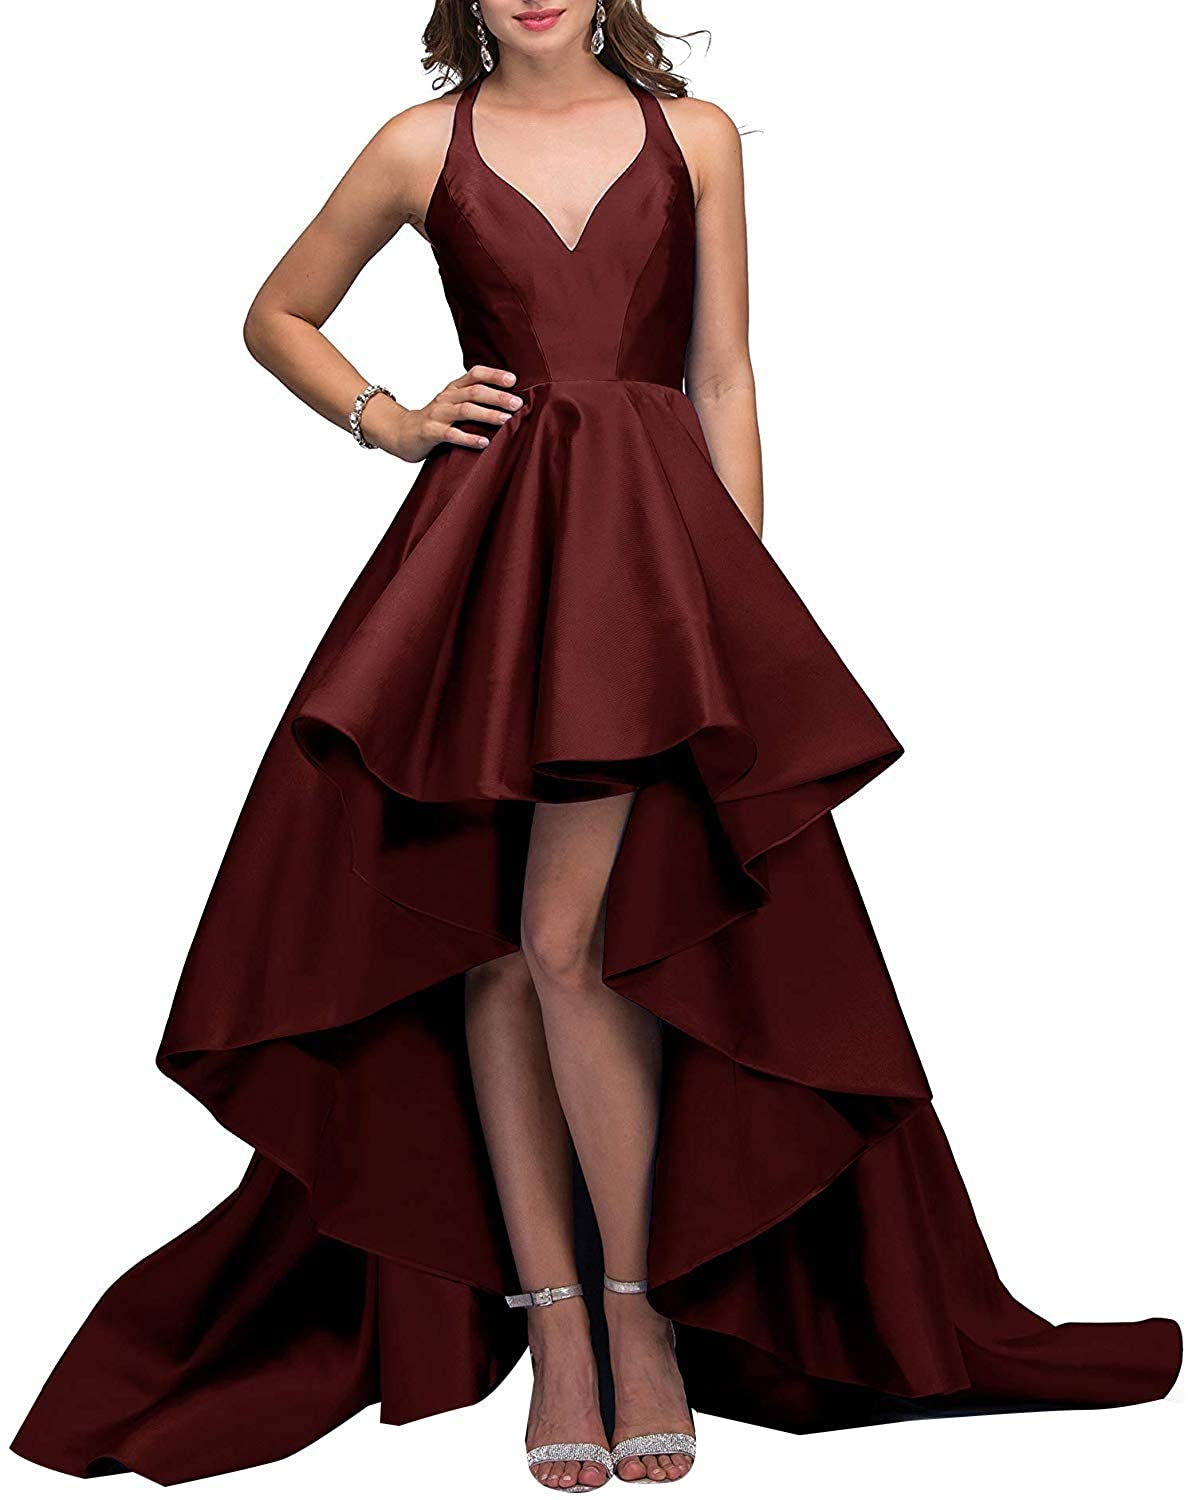 Burgundy V Neck Prom Gowns High Low Satin 2019 Open Back Formal Evening Dreses for Women